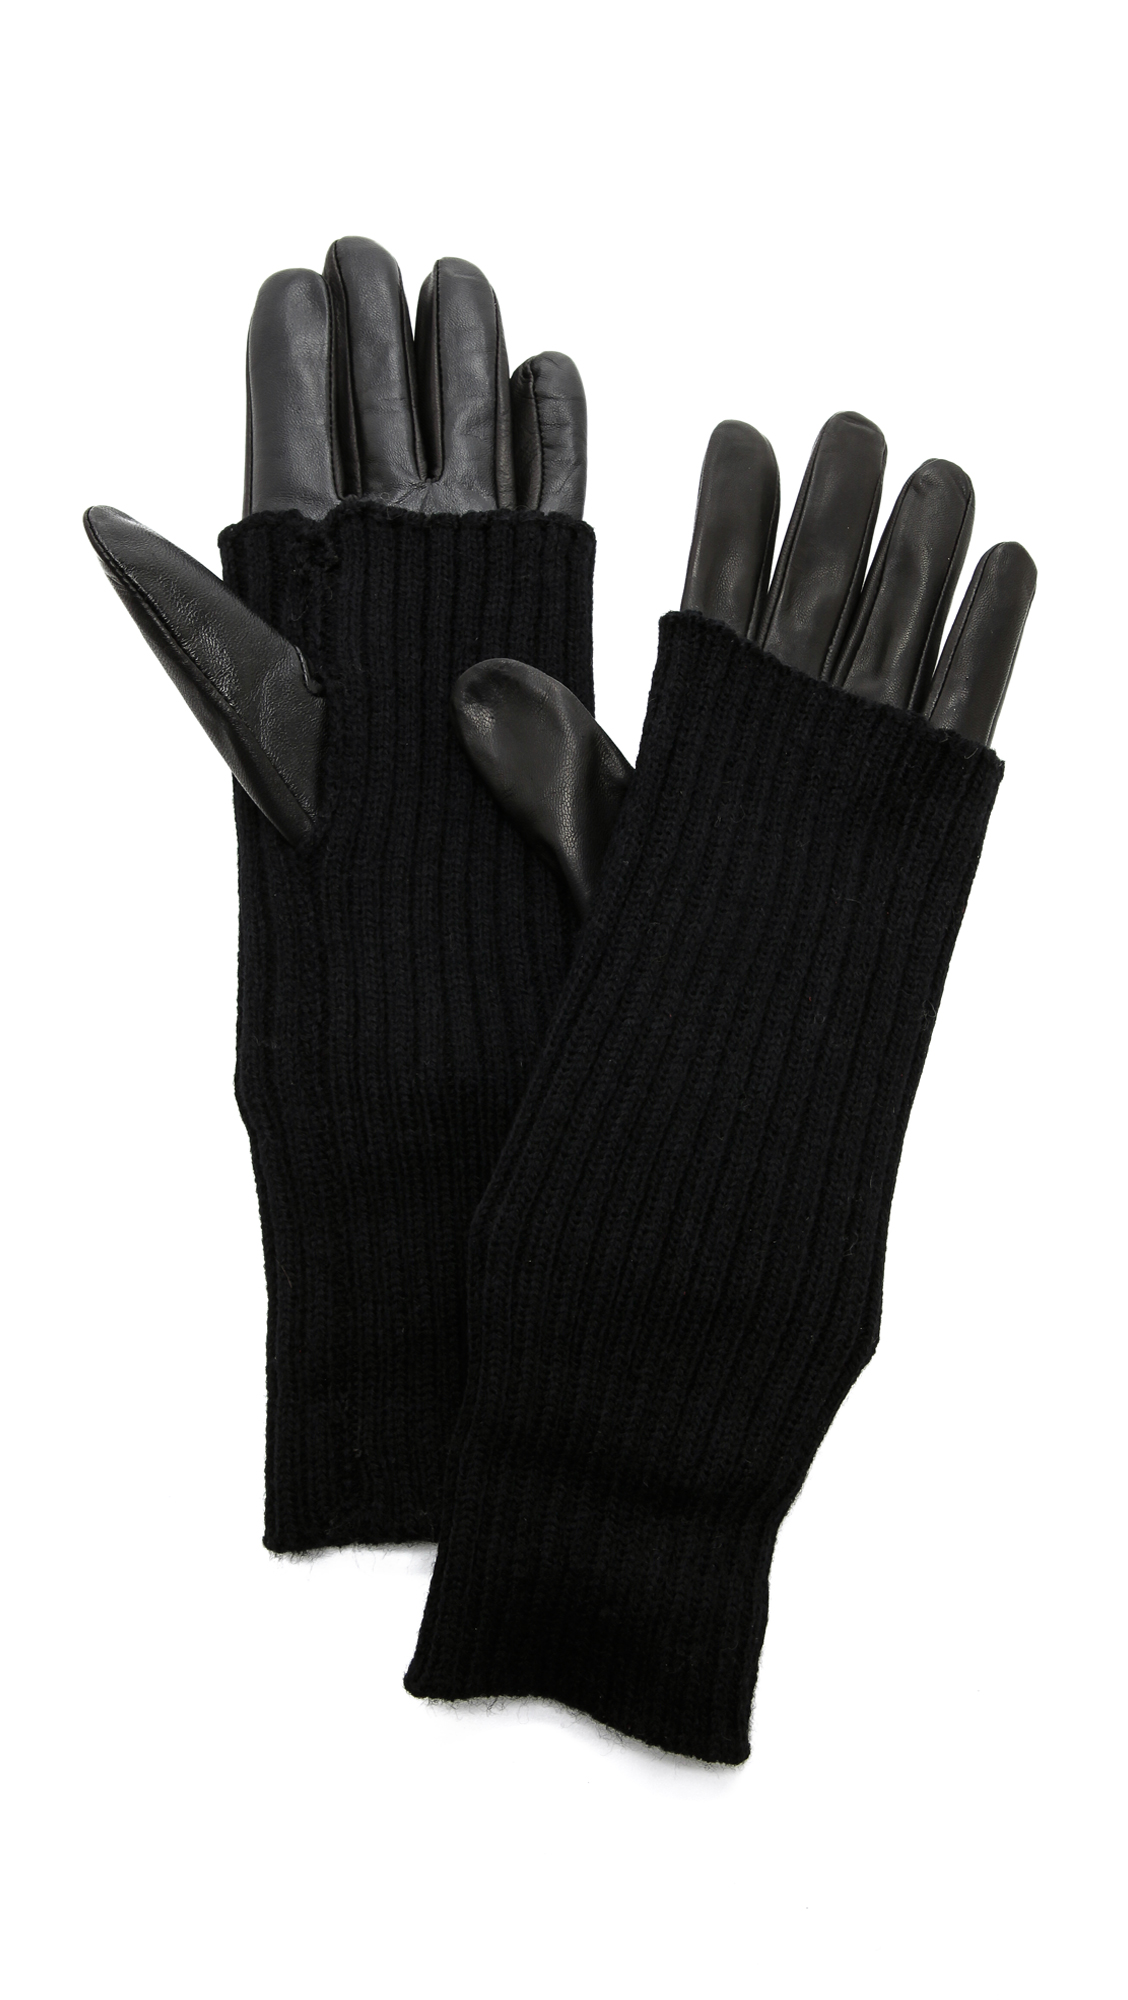 Carolina Amato Knit & Leather Texting Gloves - Black